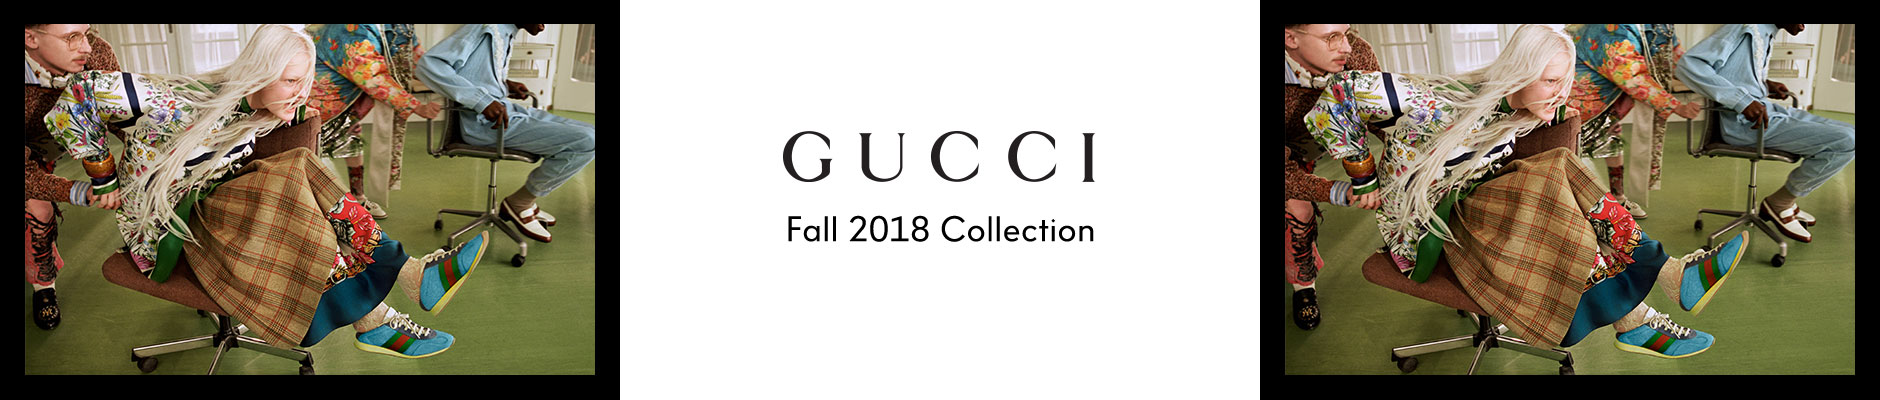 Gucci Fall 2018 Collection